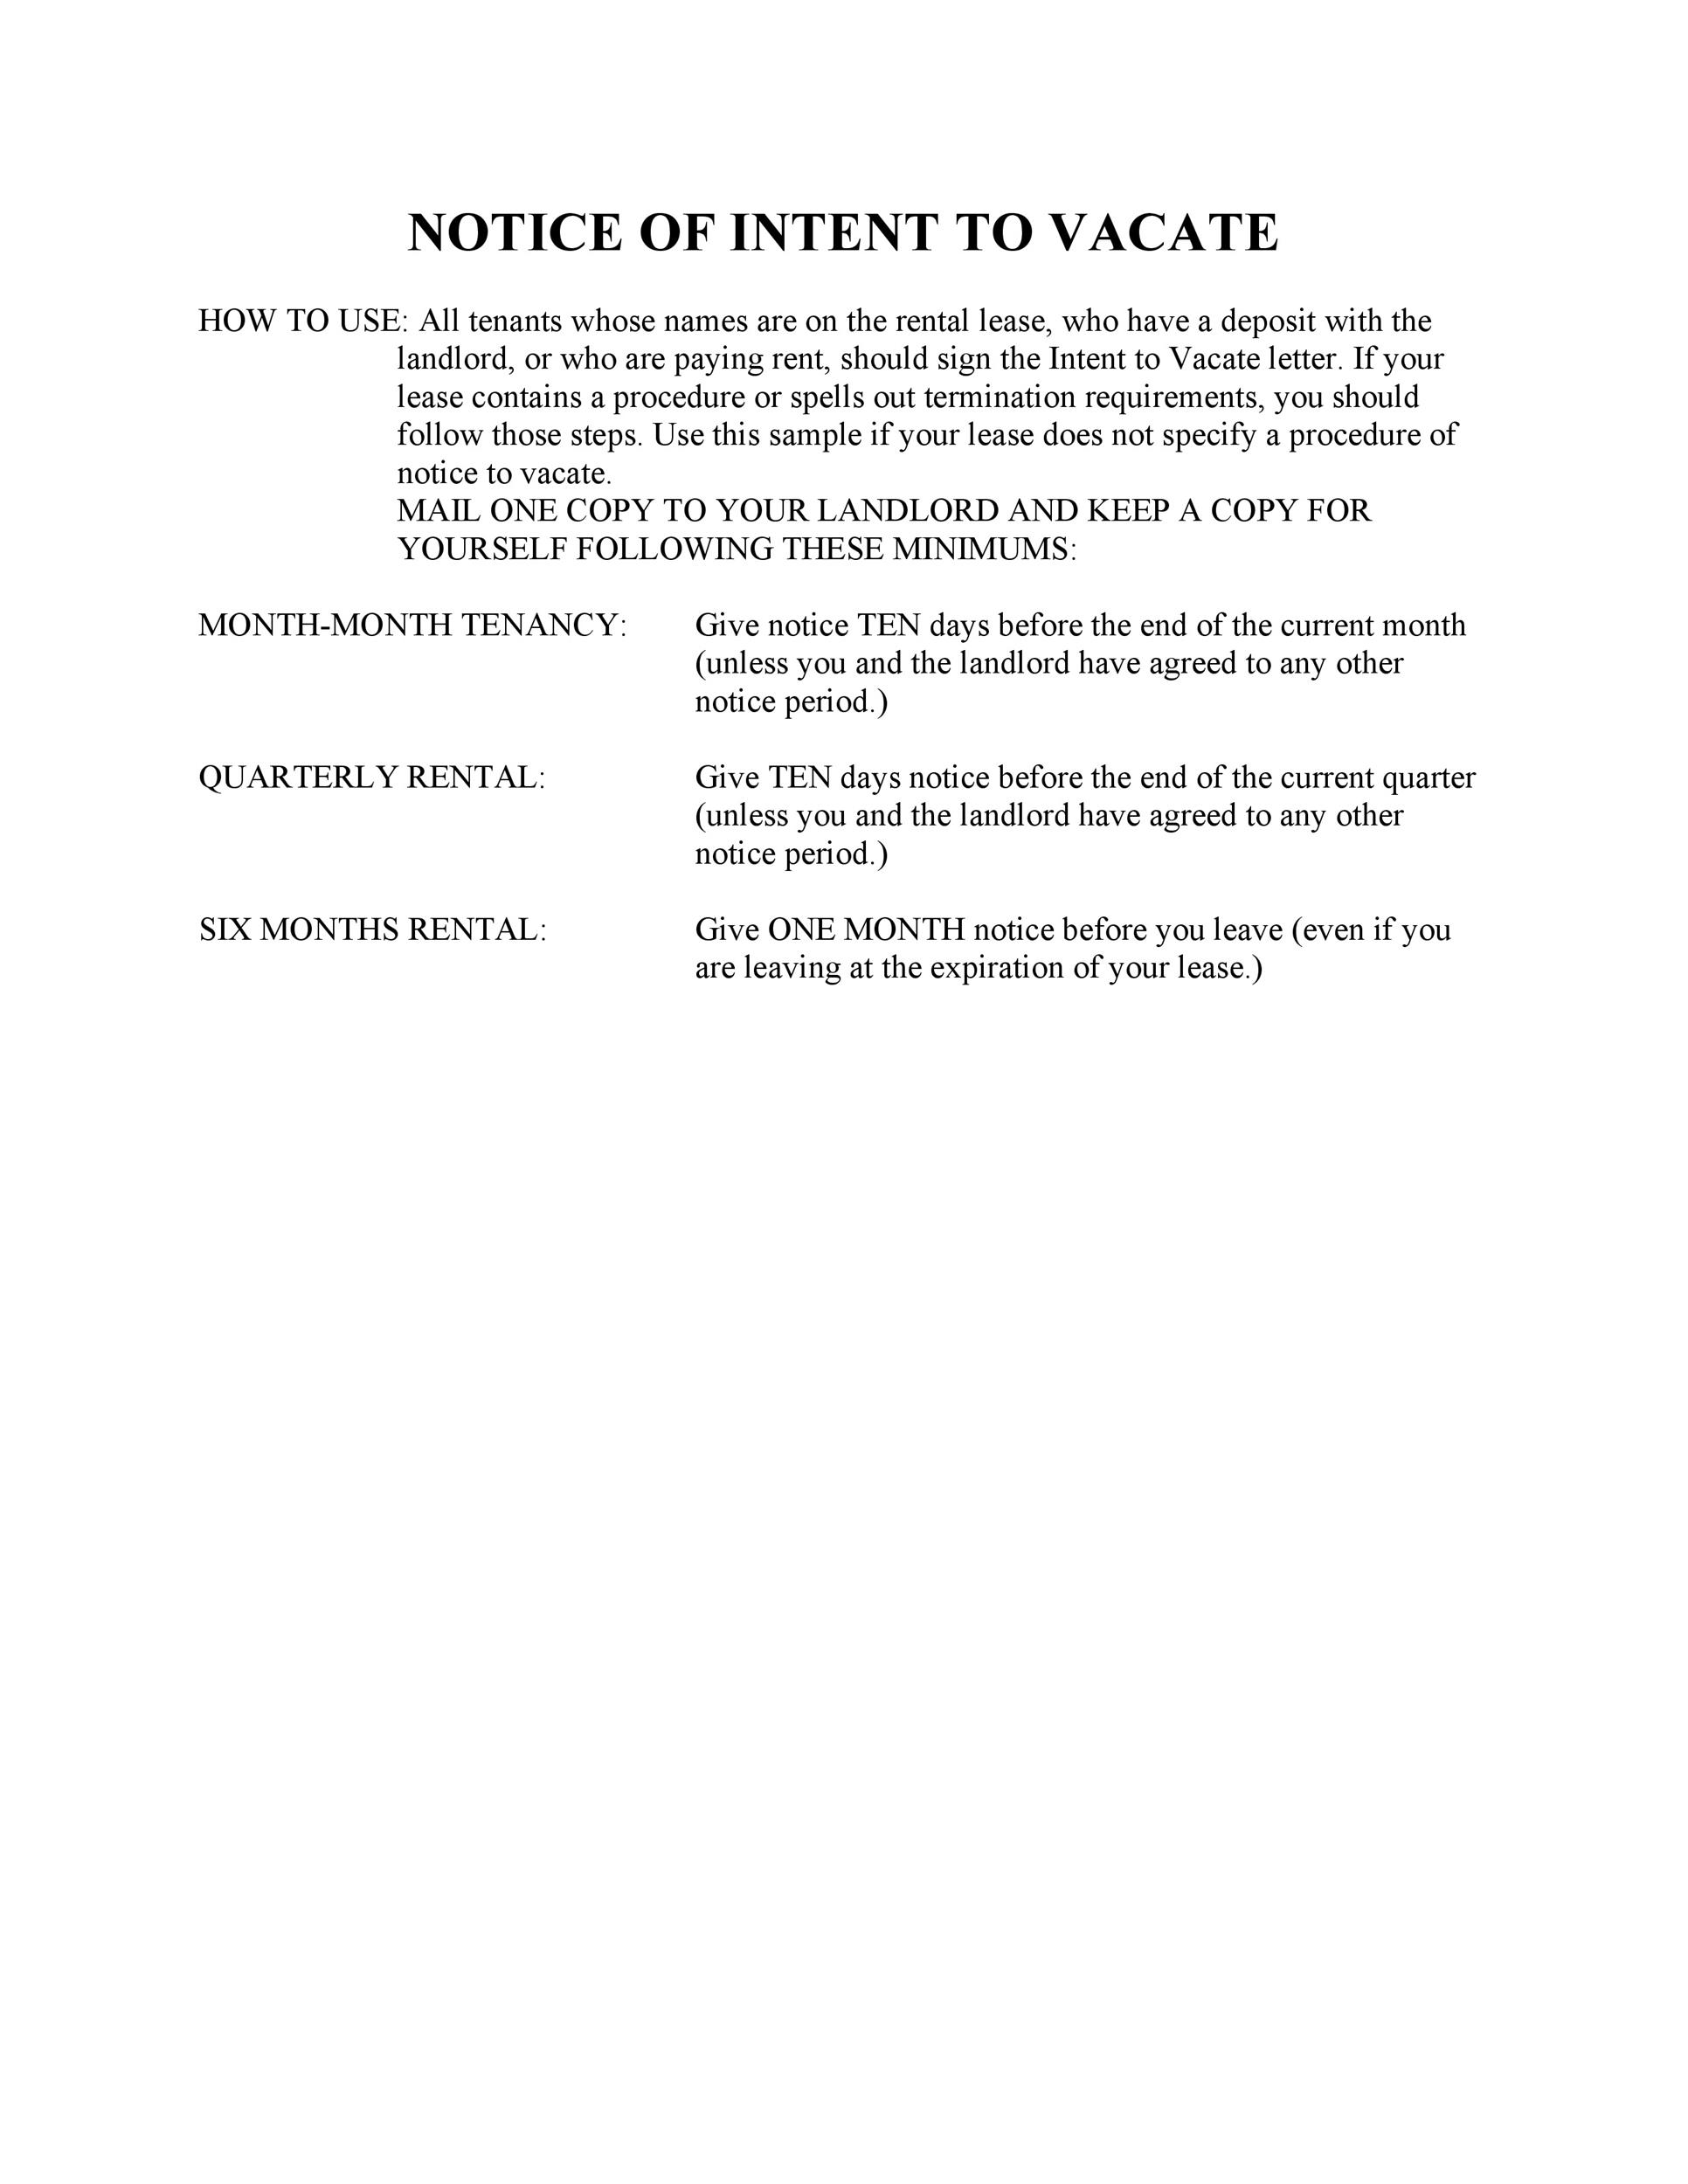 Free Notice of intent to vacate